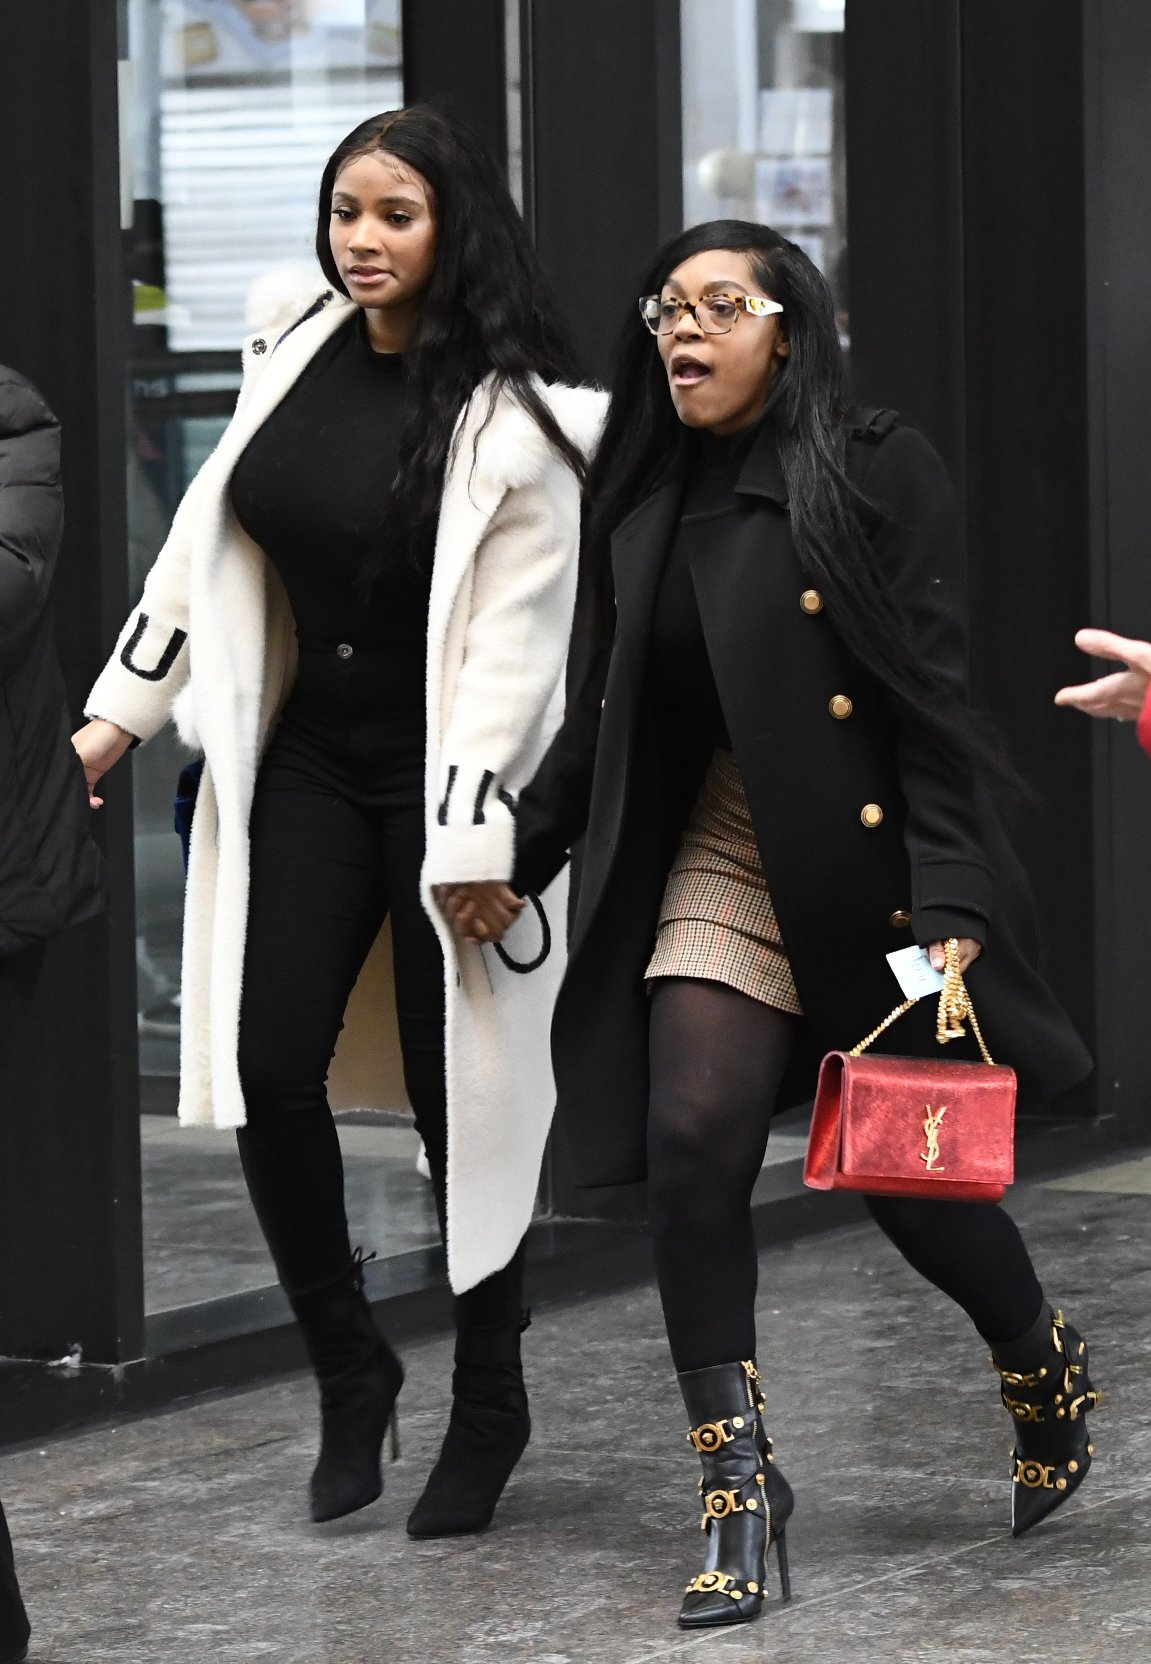 """In this Feb. 23, 2019, photo, Joycelyn Savage, left, and Azriel Clary walk into the Leighton Criminal Courthouse in Chicago for R&B star R. Kelly's first court appearance on sexual abuse charges. """"CBS This Morning"""" interviews with the two women who live with Kelly ??? Savage and Clary ??? will air Thursday, March 7. (AP Photo/Matt Marton)"""